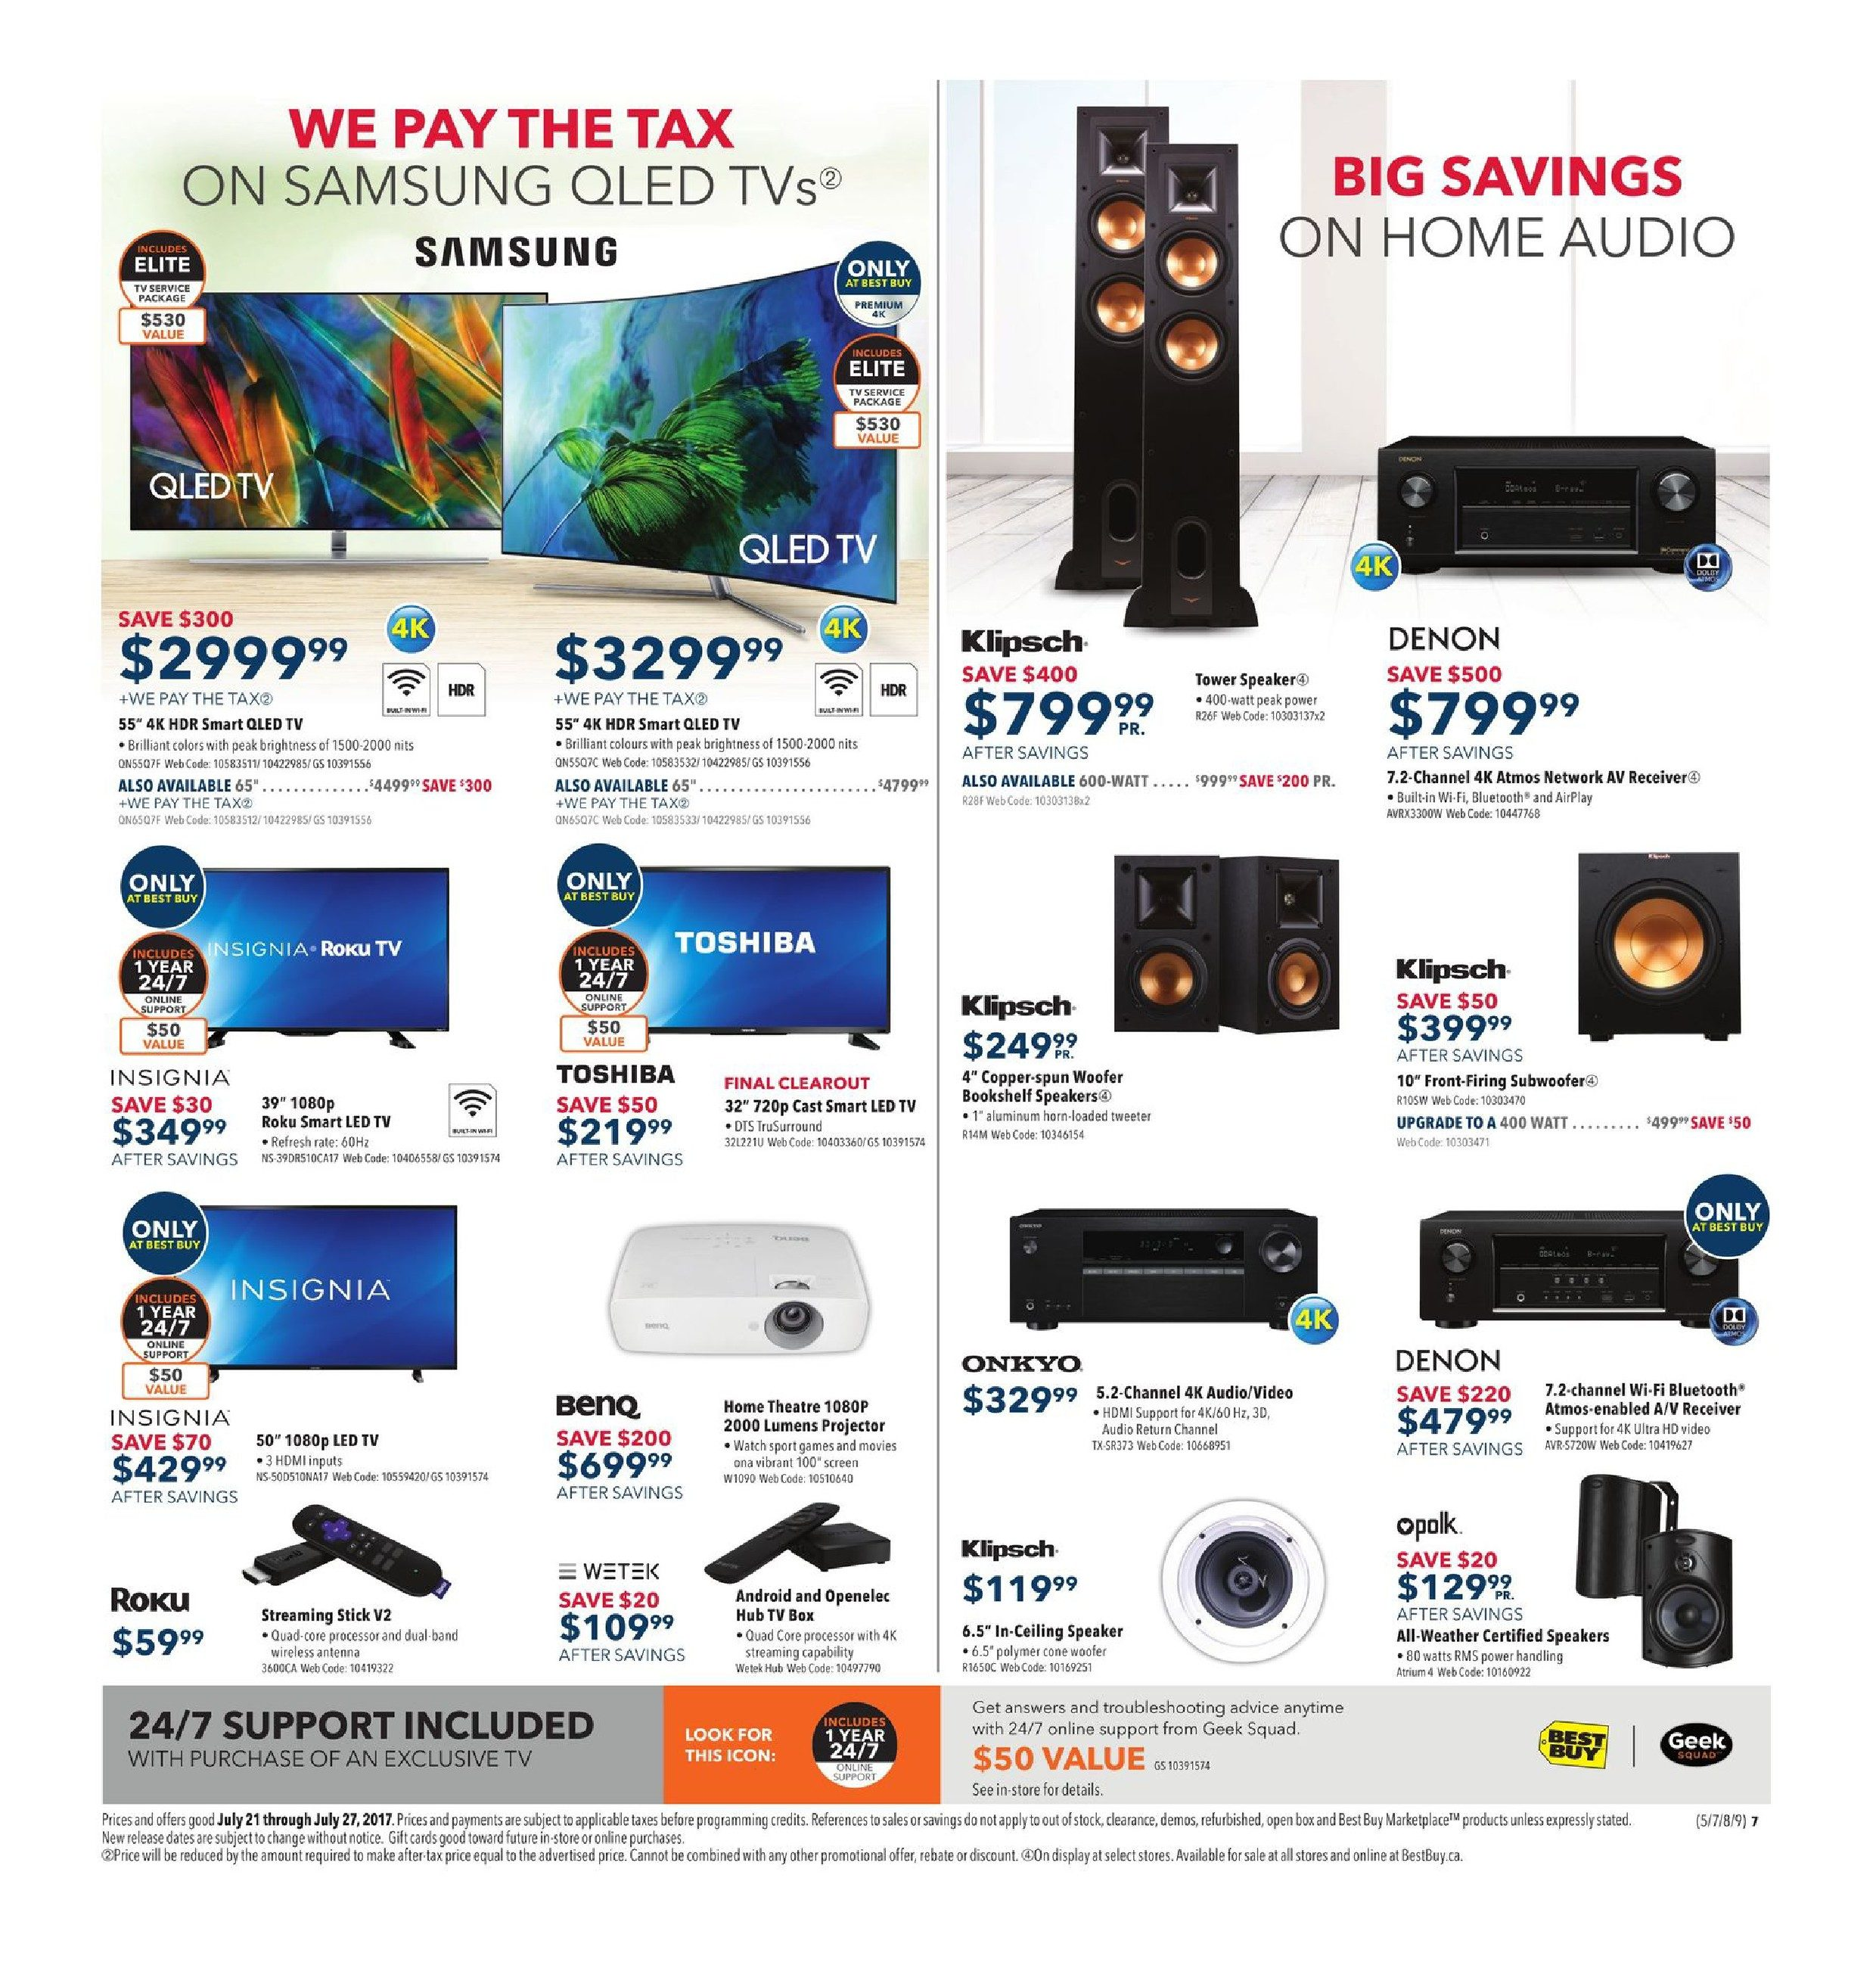 Best buy weekly flyer weekly find amazing deals on the hottest best buy weekly flyer weekly find amazing deals on the hottest tech jul 21 27 redflagdeals fandeluxe Image collections